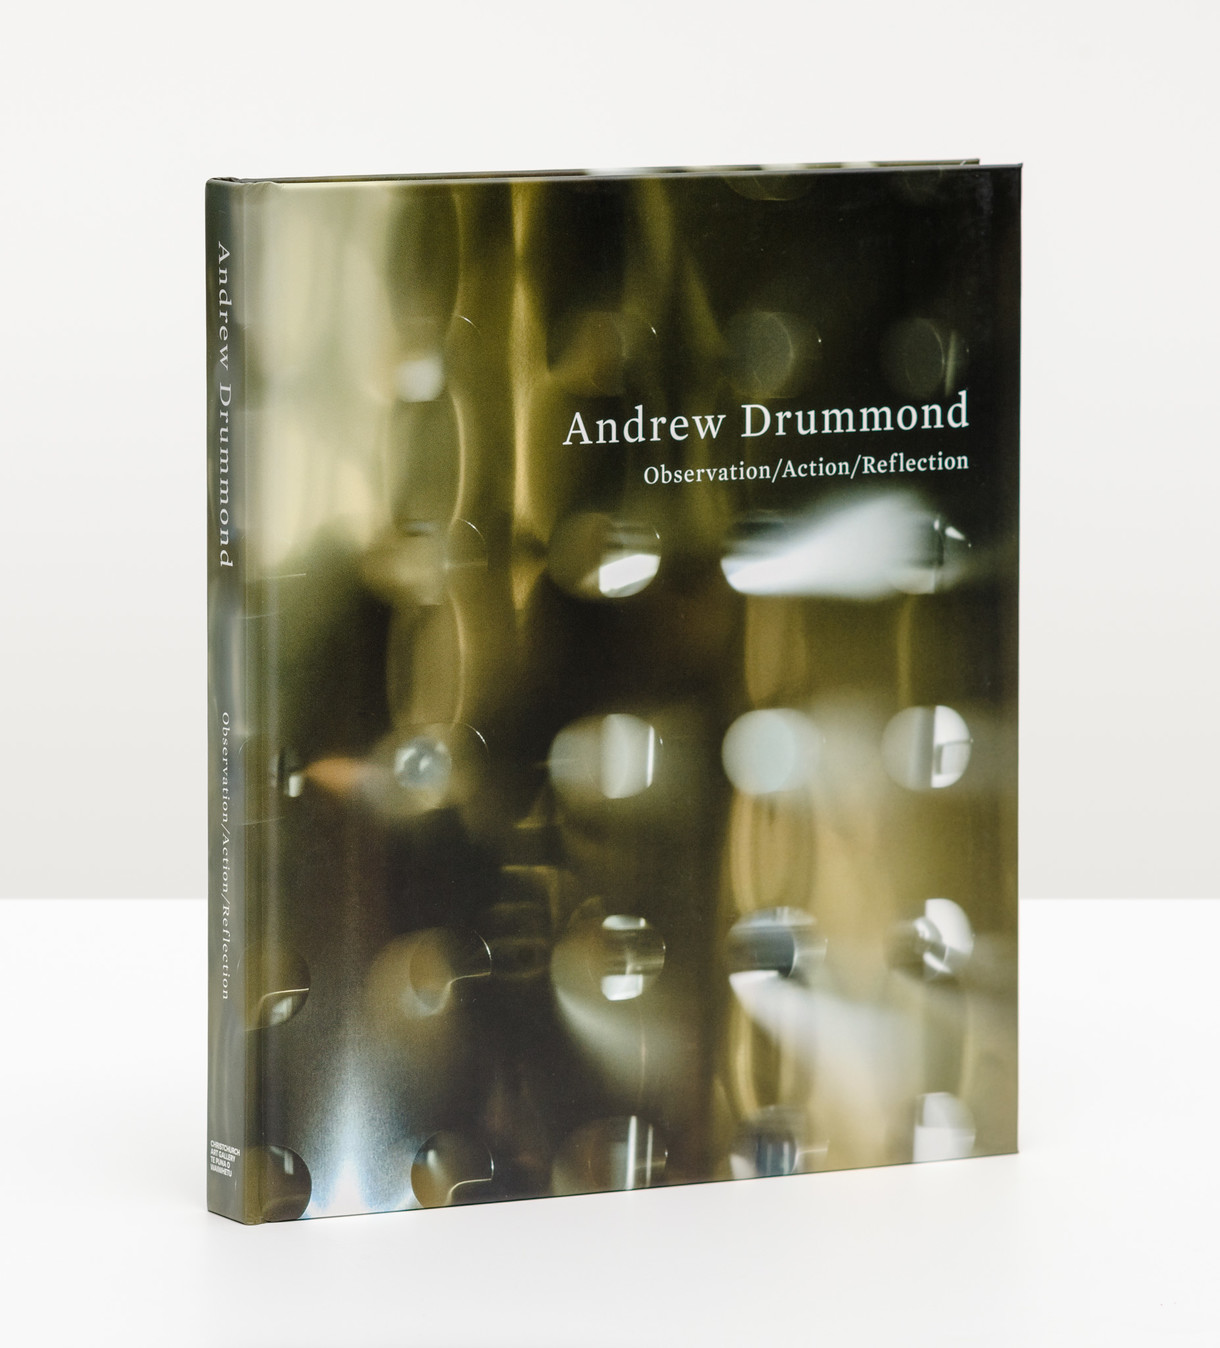 Andrew Drummond: Observation / Action / Reflection